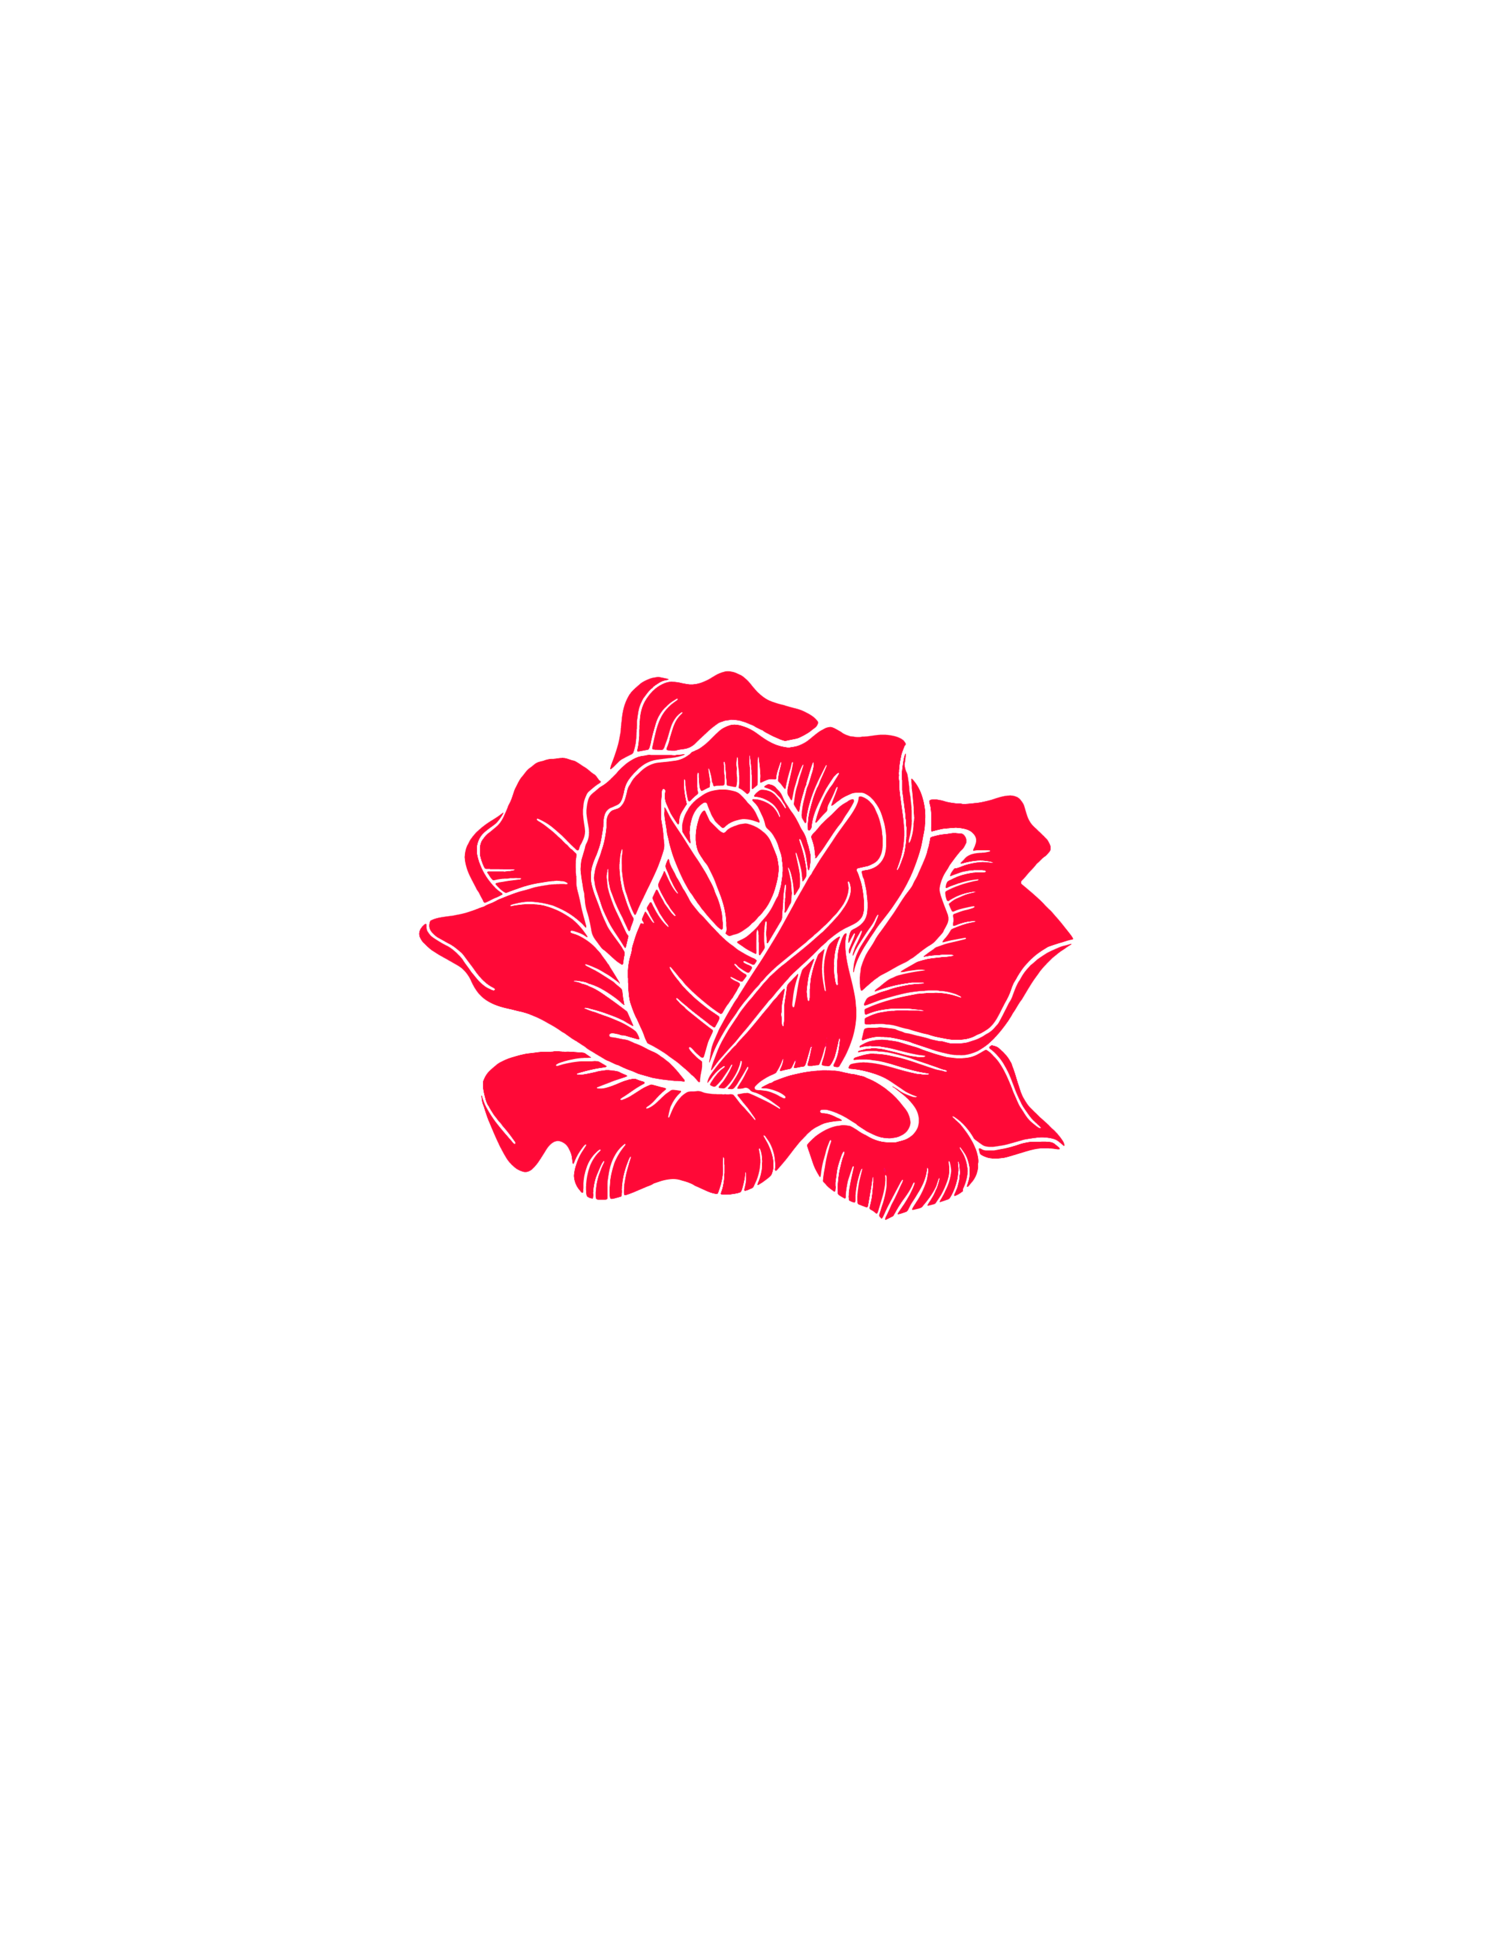 Rose City Midwifery